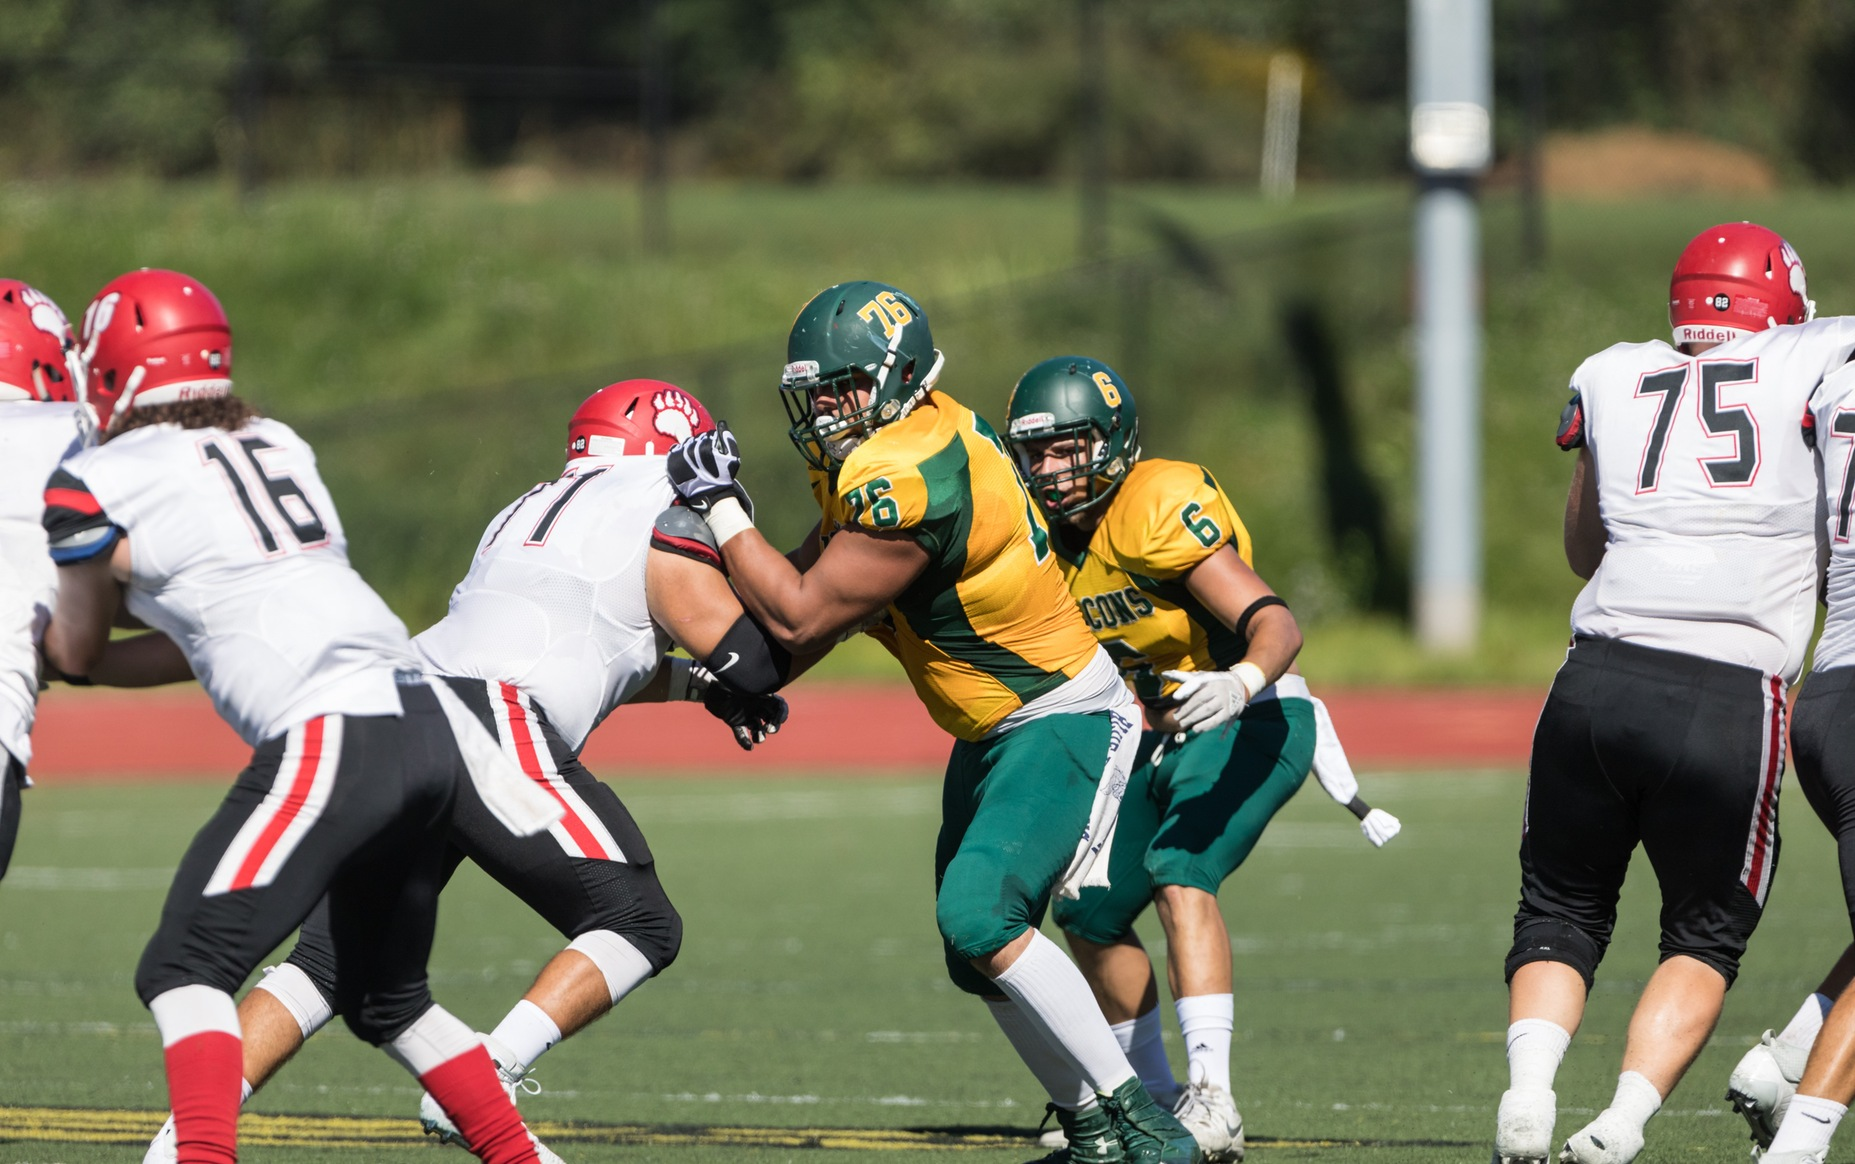 Falcons Fall to Rams in MASCAC action, 32-16